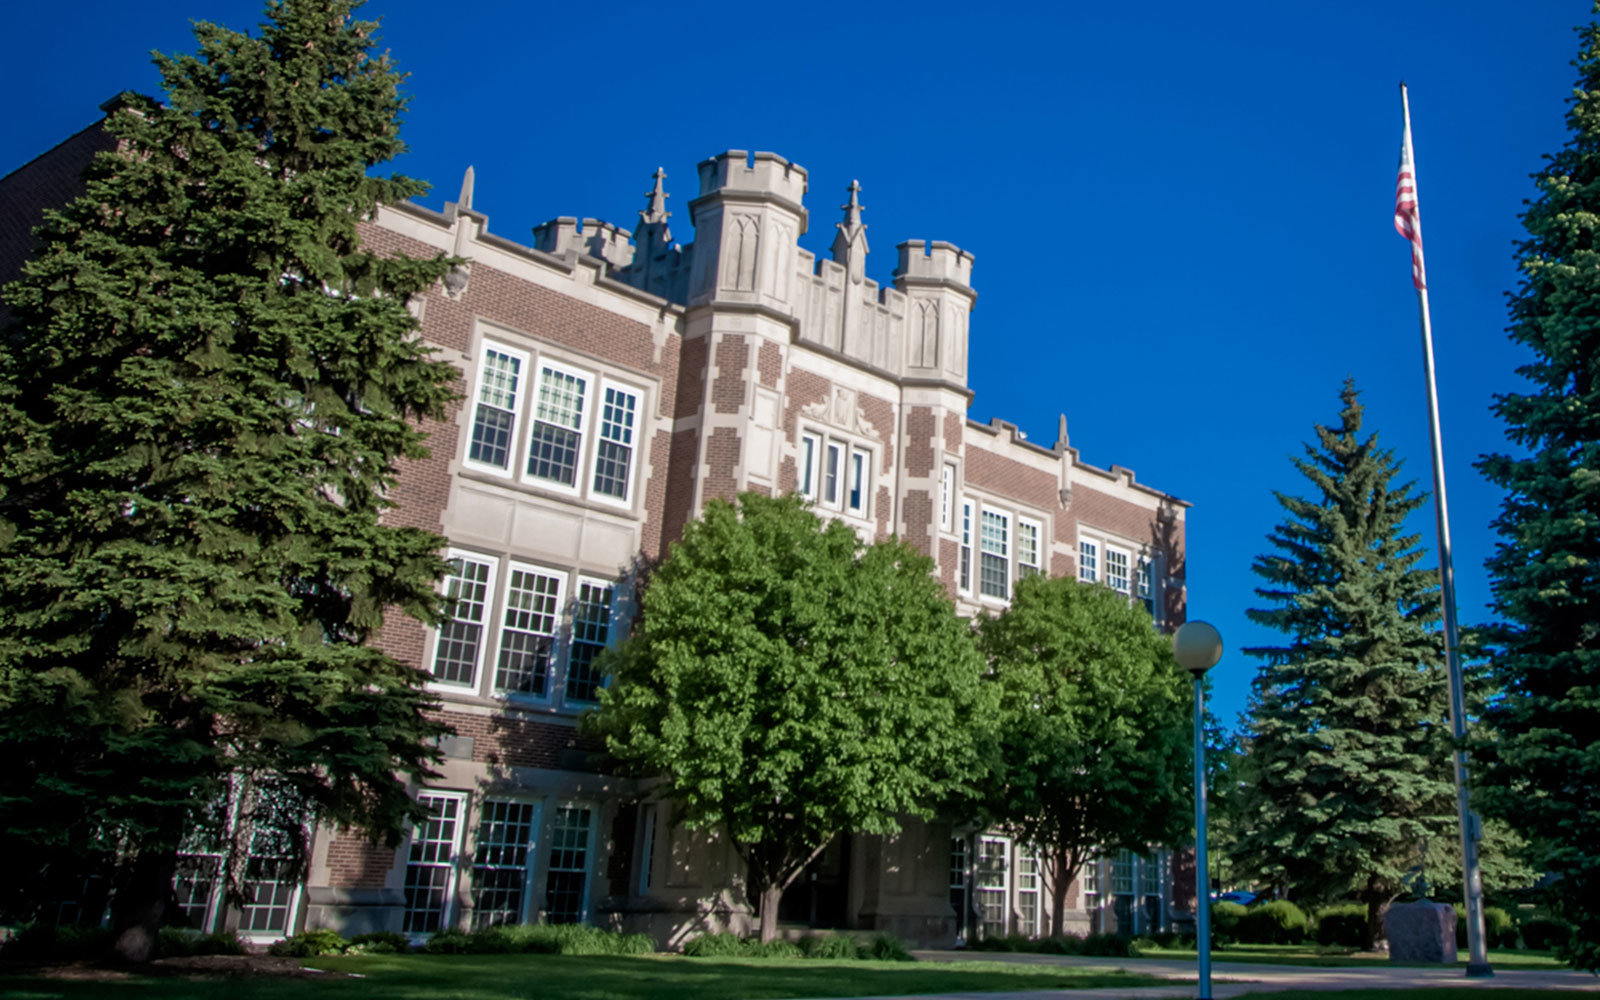 Prettiest College Campuses in Every State